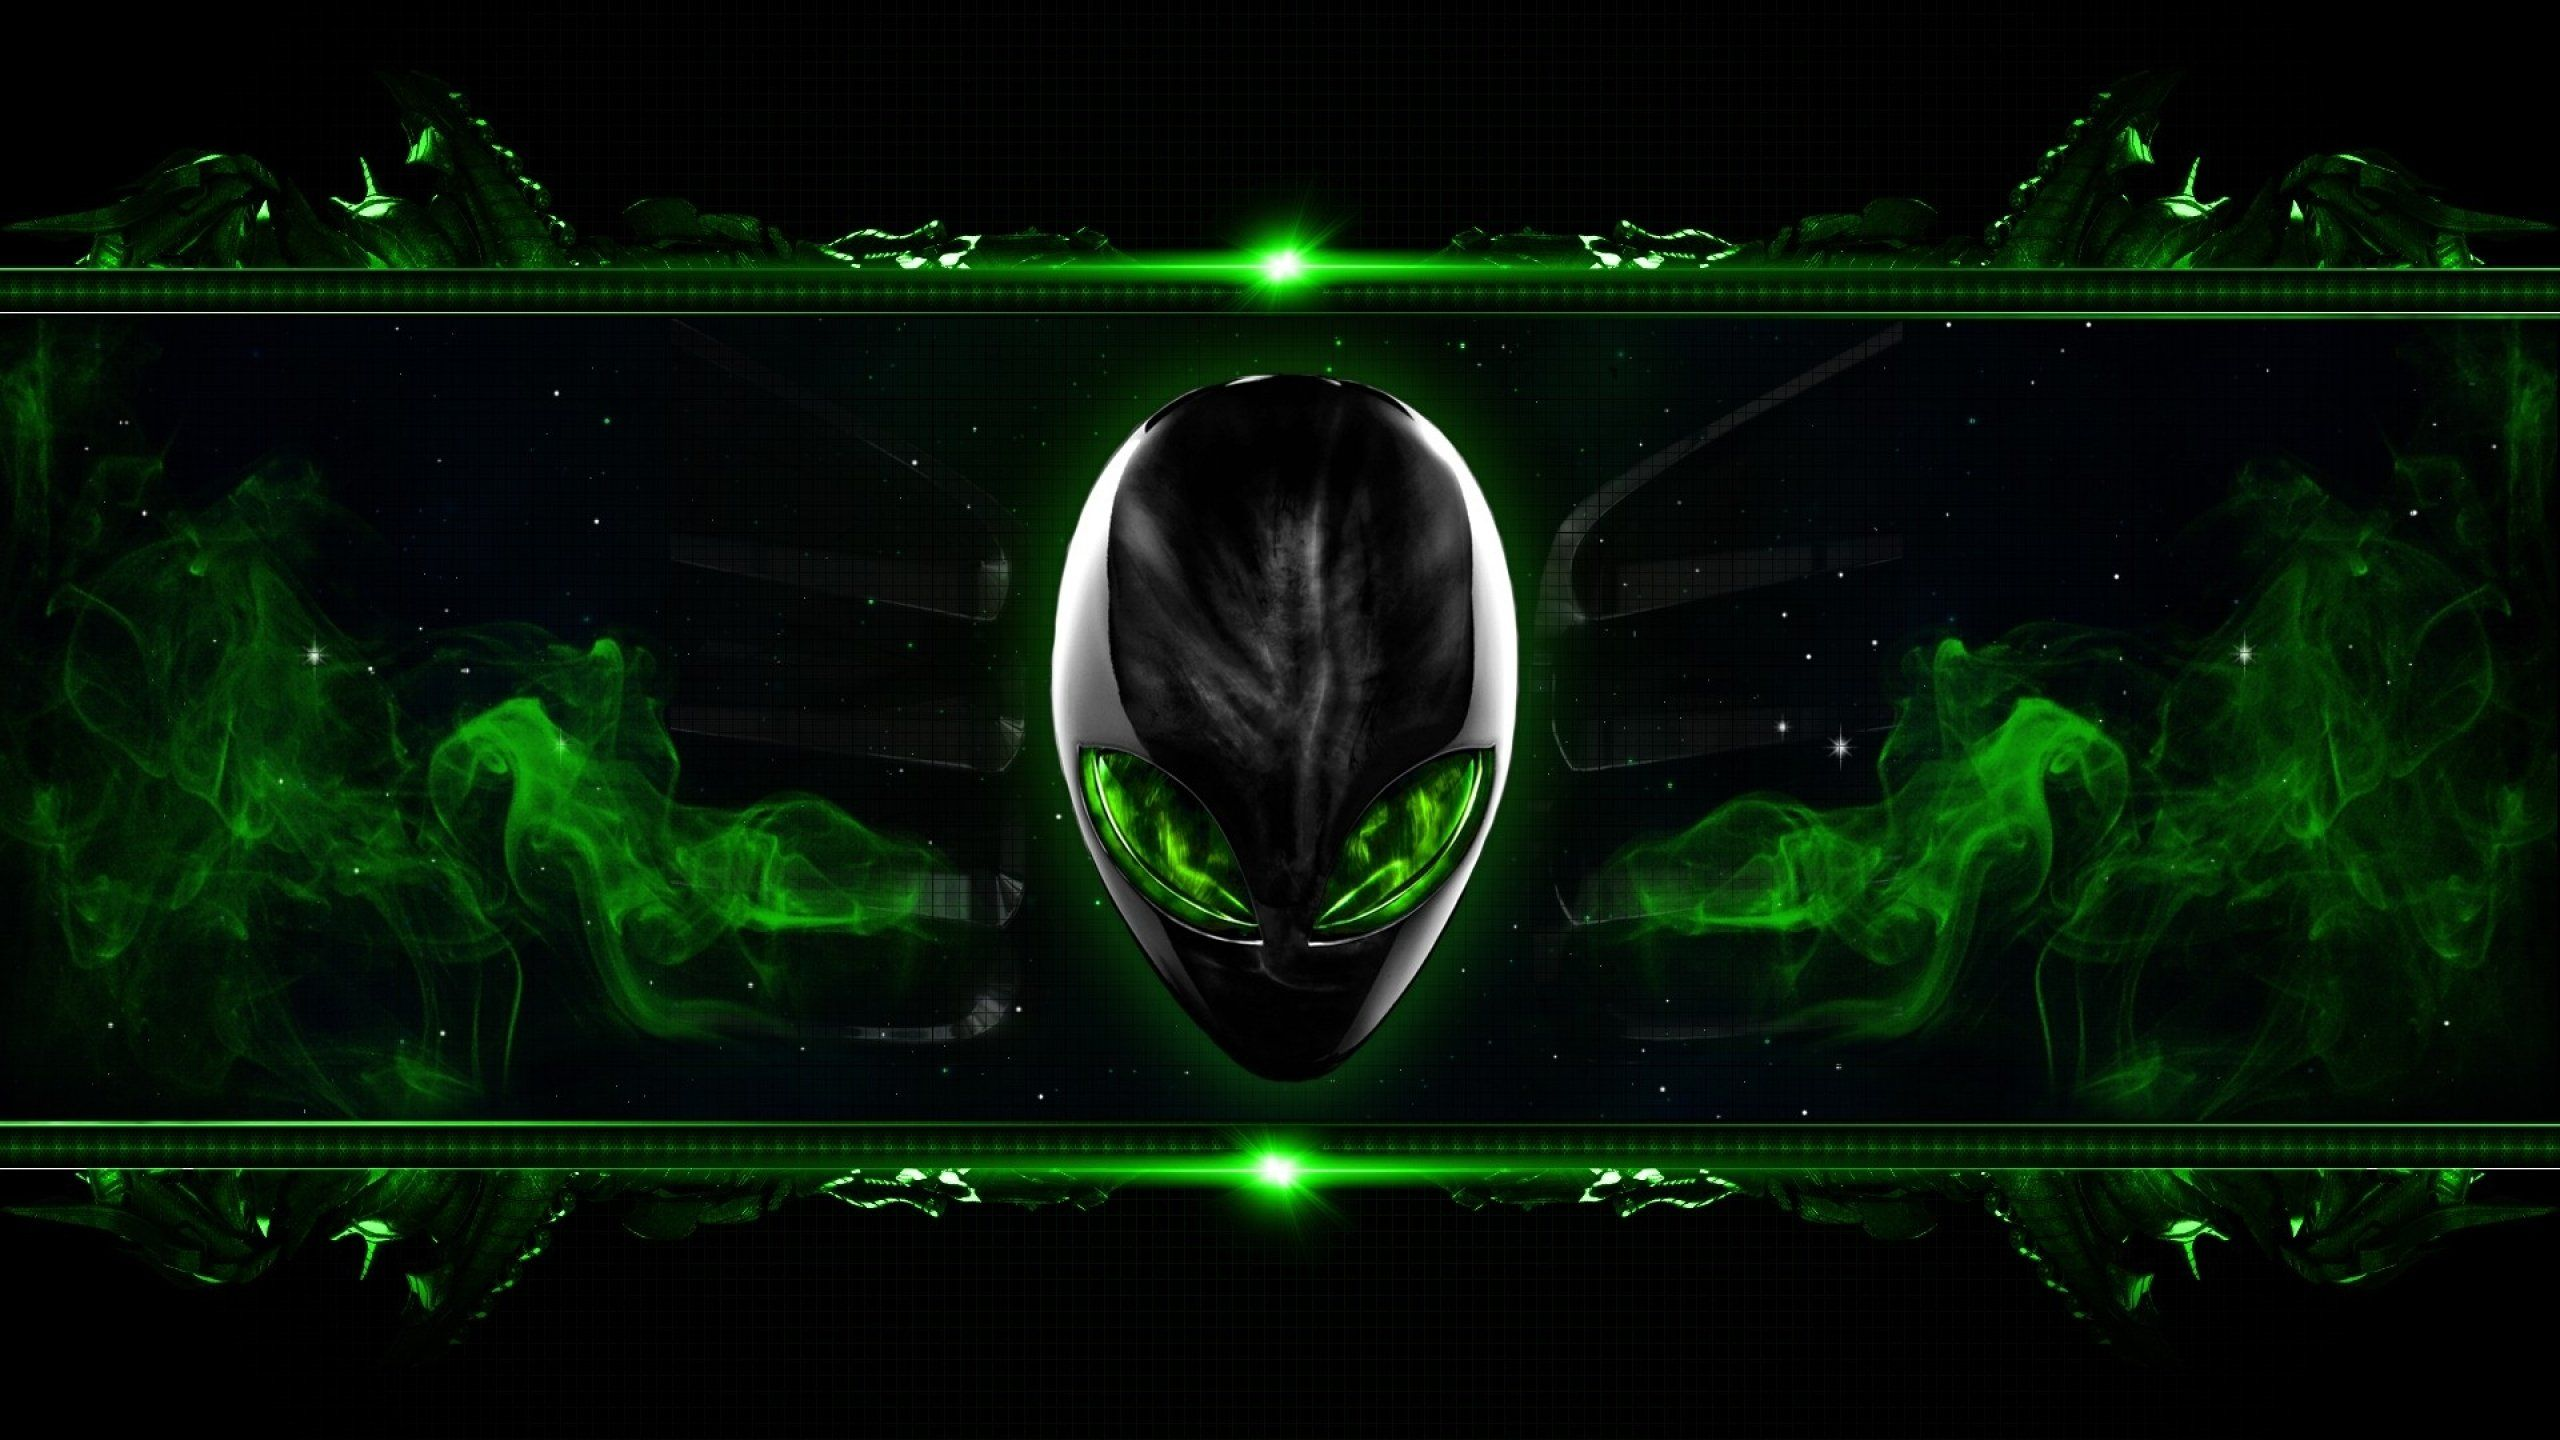 2560x1440 125 Alienware HD Wallpapers   Background Images - Wallpaper Abyss